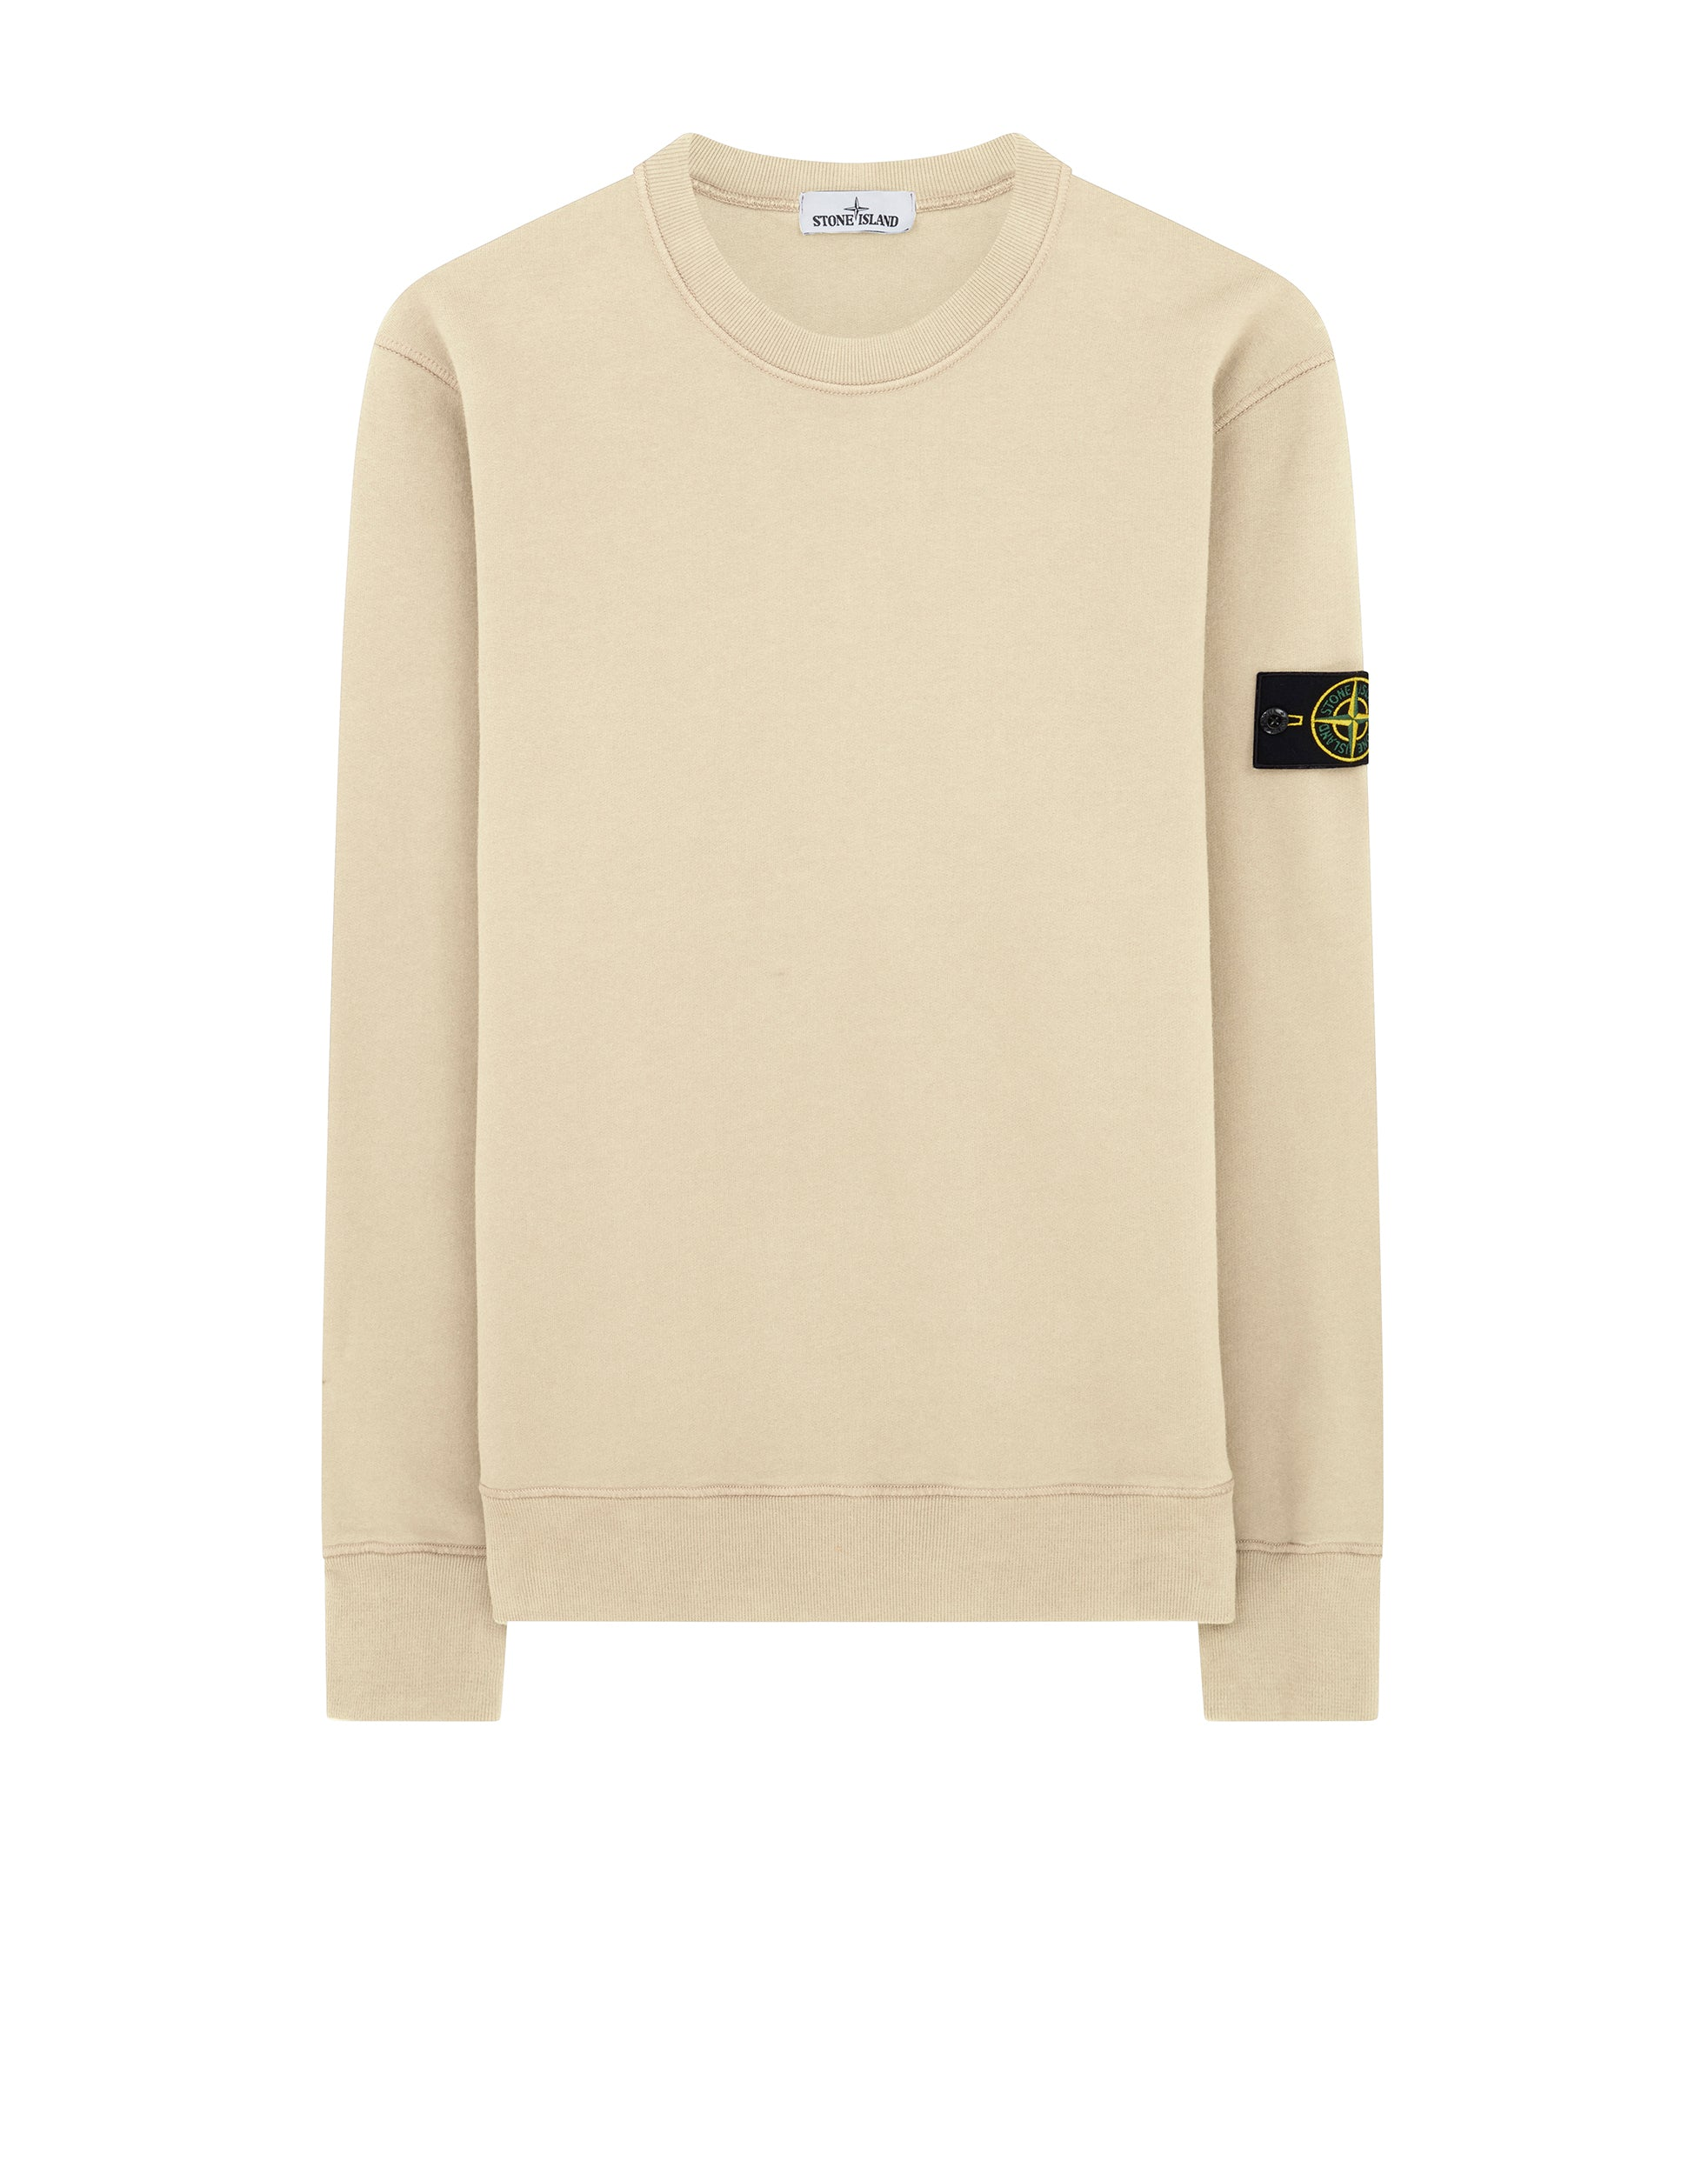 63020 Sweatshirt in Butter